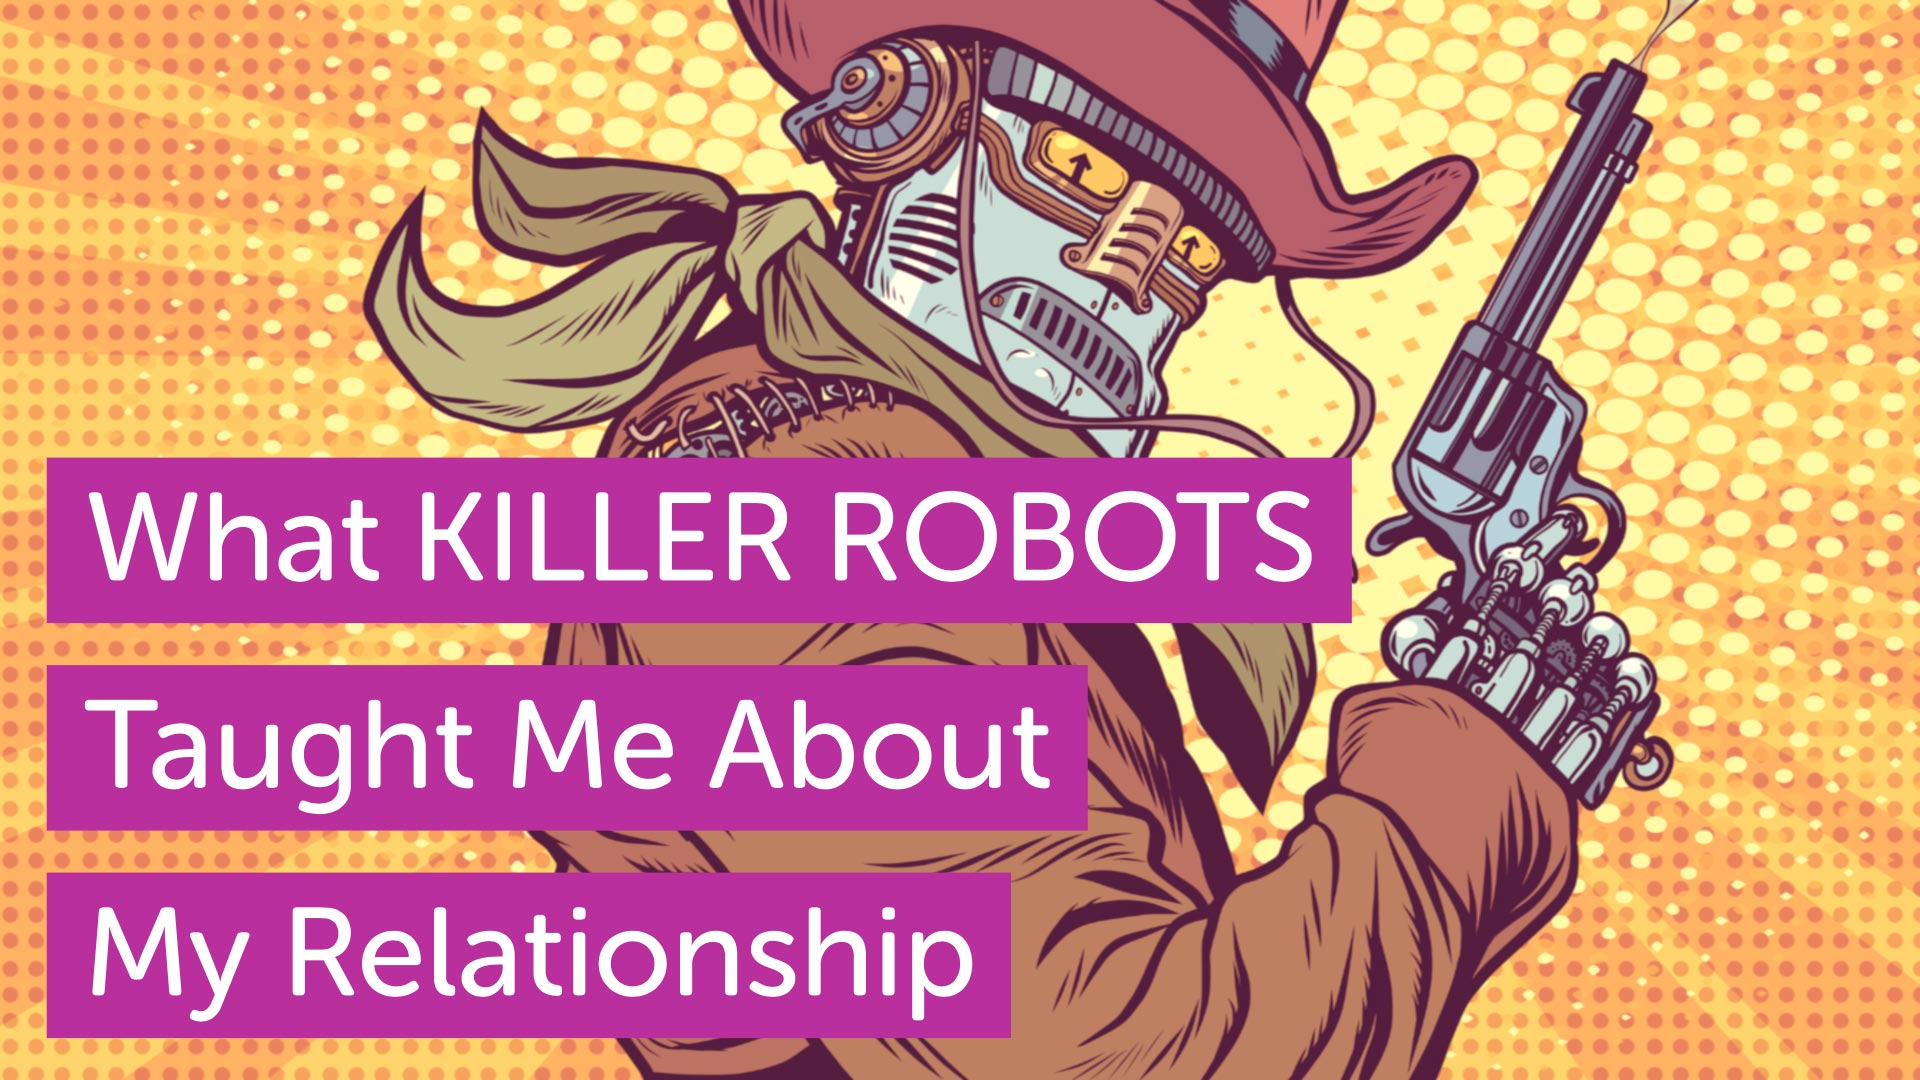 What Killer Robots Taught Me About My Relationship